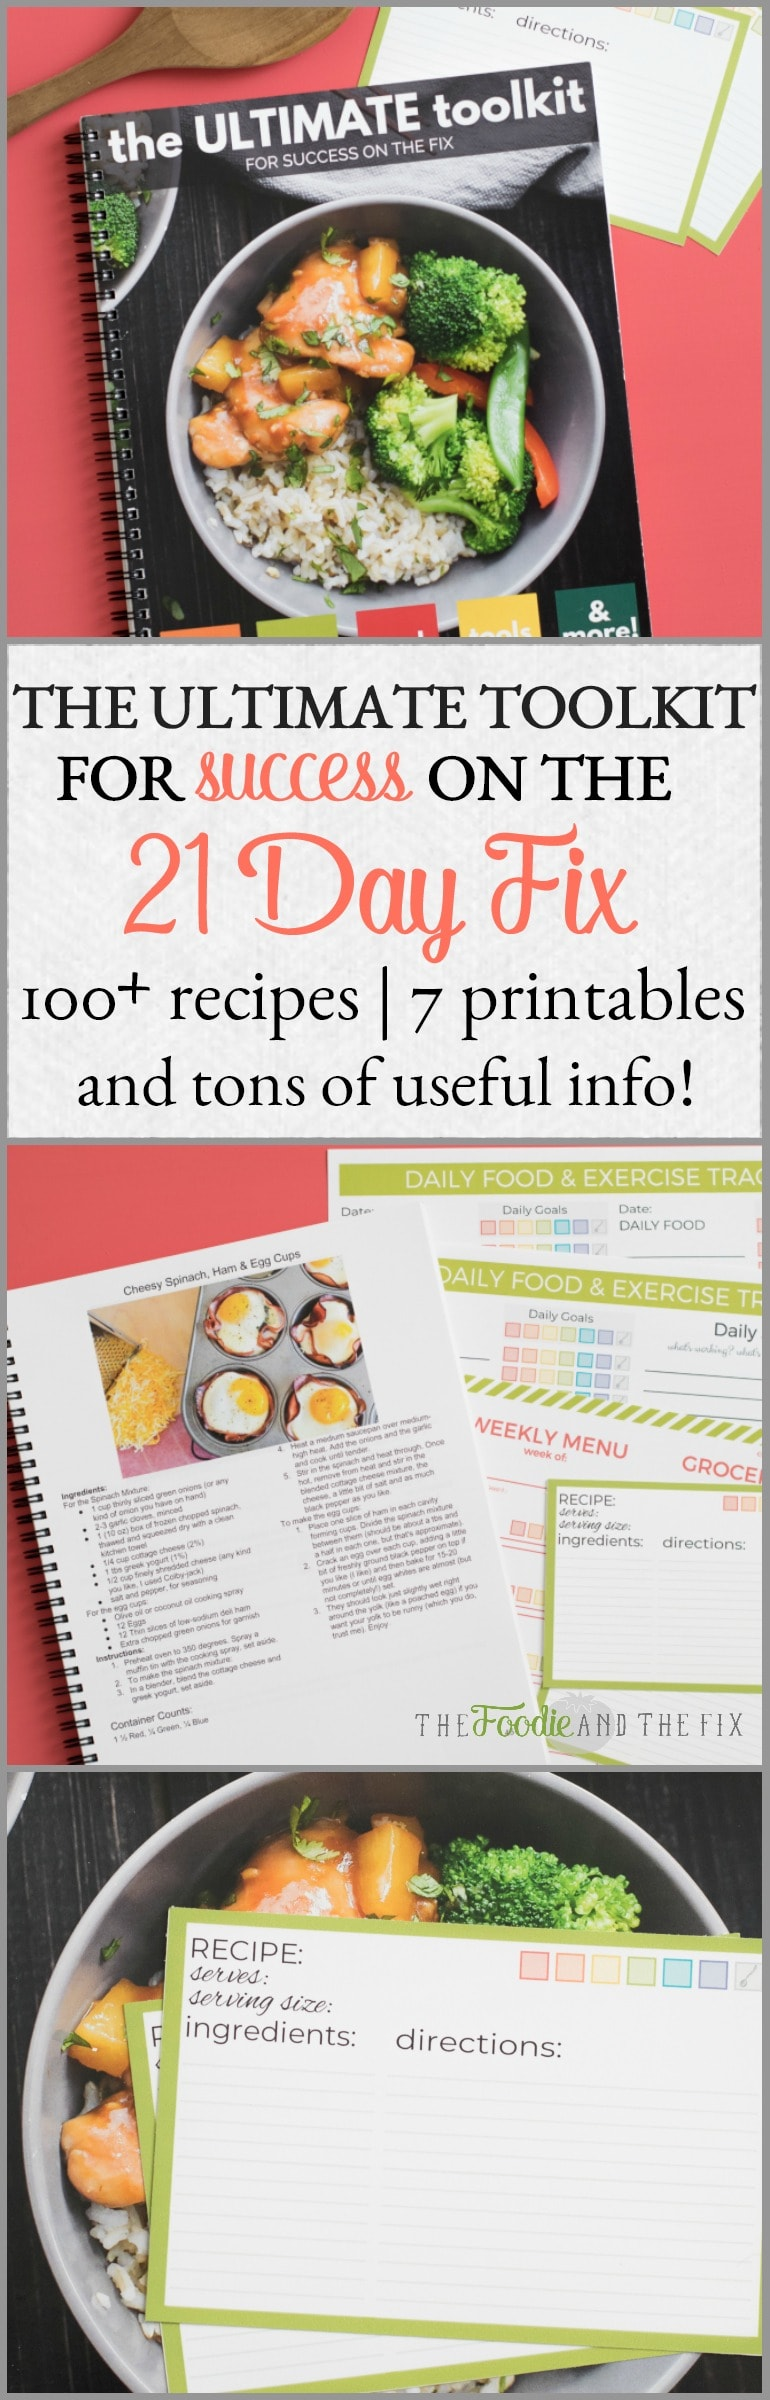 I'm bringing you The Ultimate Toolkit for success on the 21 Day Fix! It has tons of recipes, printables, meal planning tips, how to read a nutrition label, food lists, frequently asked questions and SO MUCH MORE!#21dayfix #mealplanning #healthy #healthyrecipes #healthycookbook #beachbody